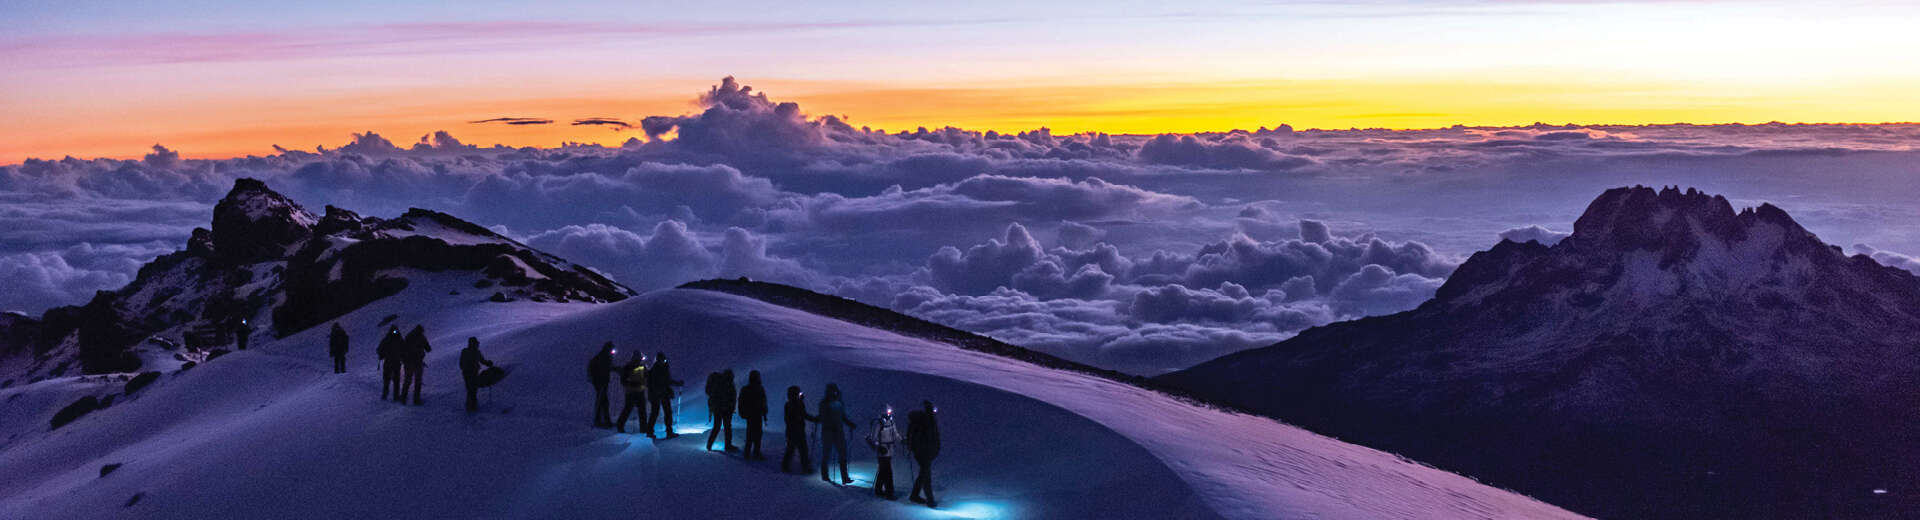 Kilimanjaro insider journey summit